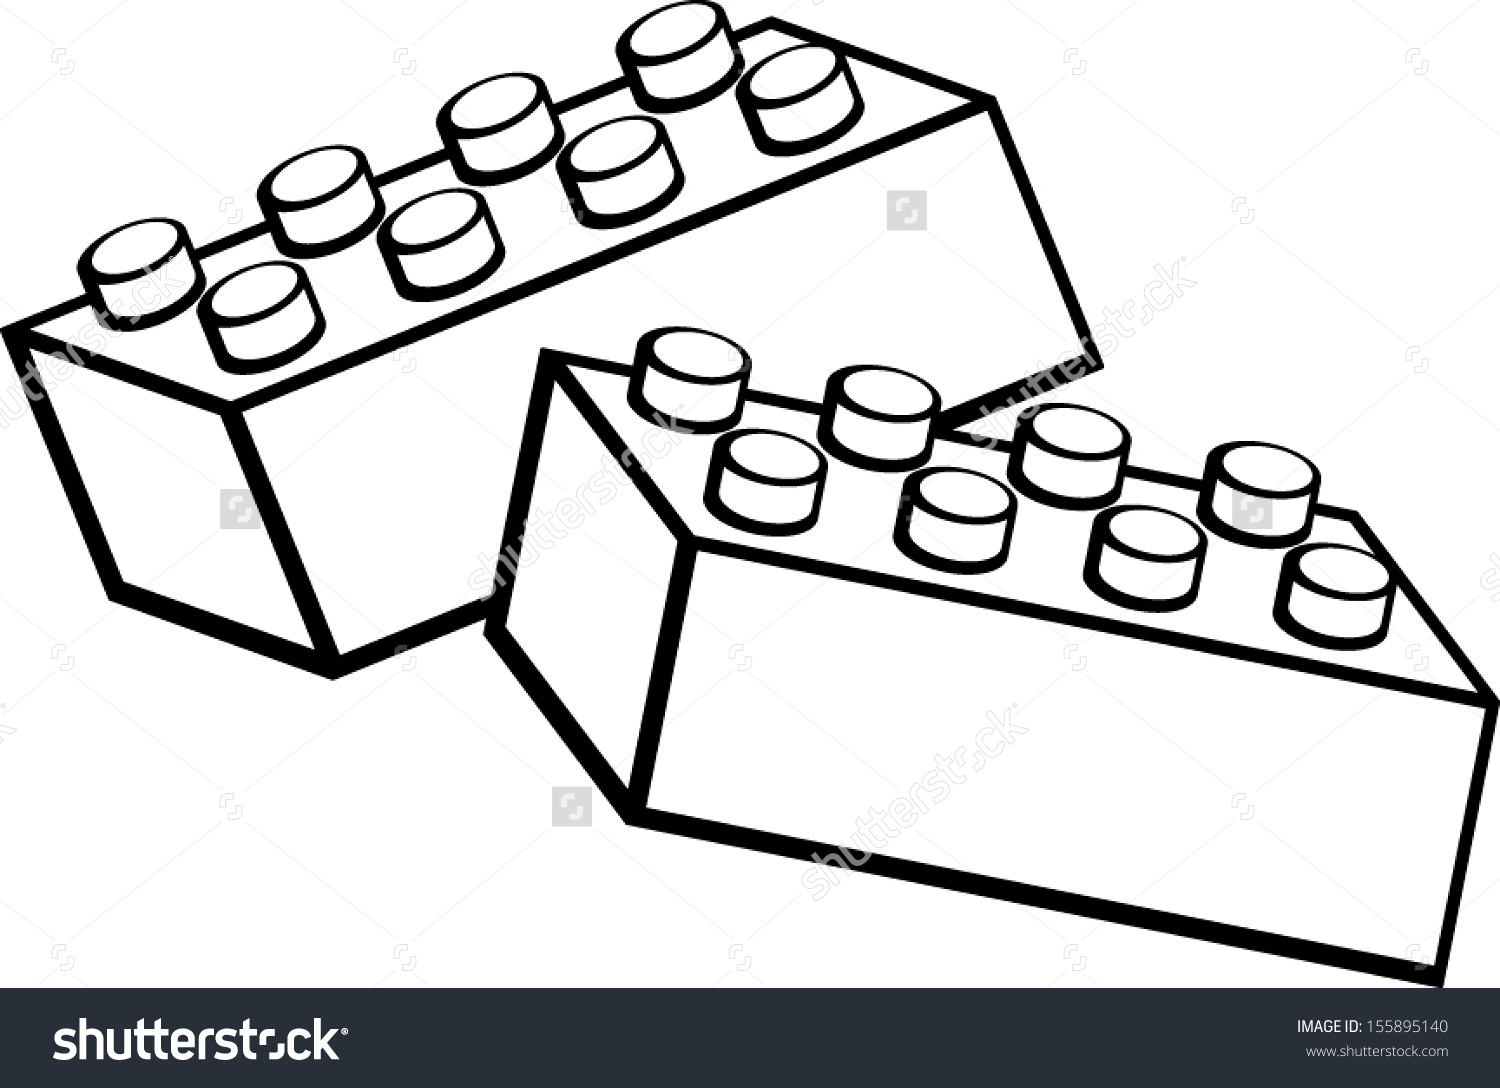 Building blocks clipart black and white clipart download Toy Building Blocks Bricks Stock Vector 155895140 - Shutterstock clipart download